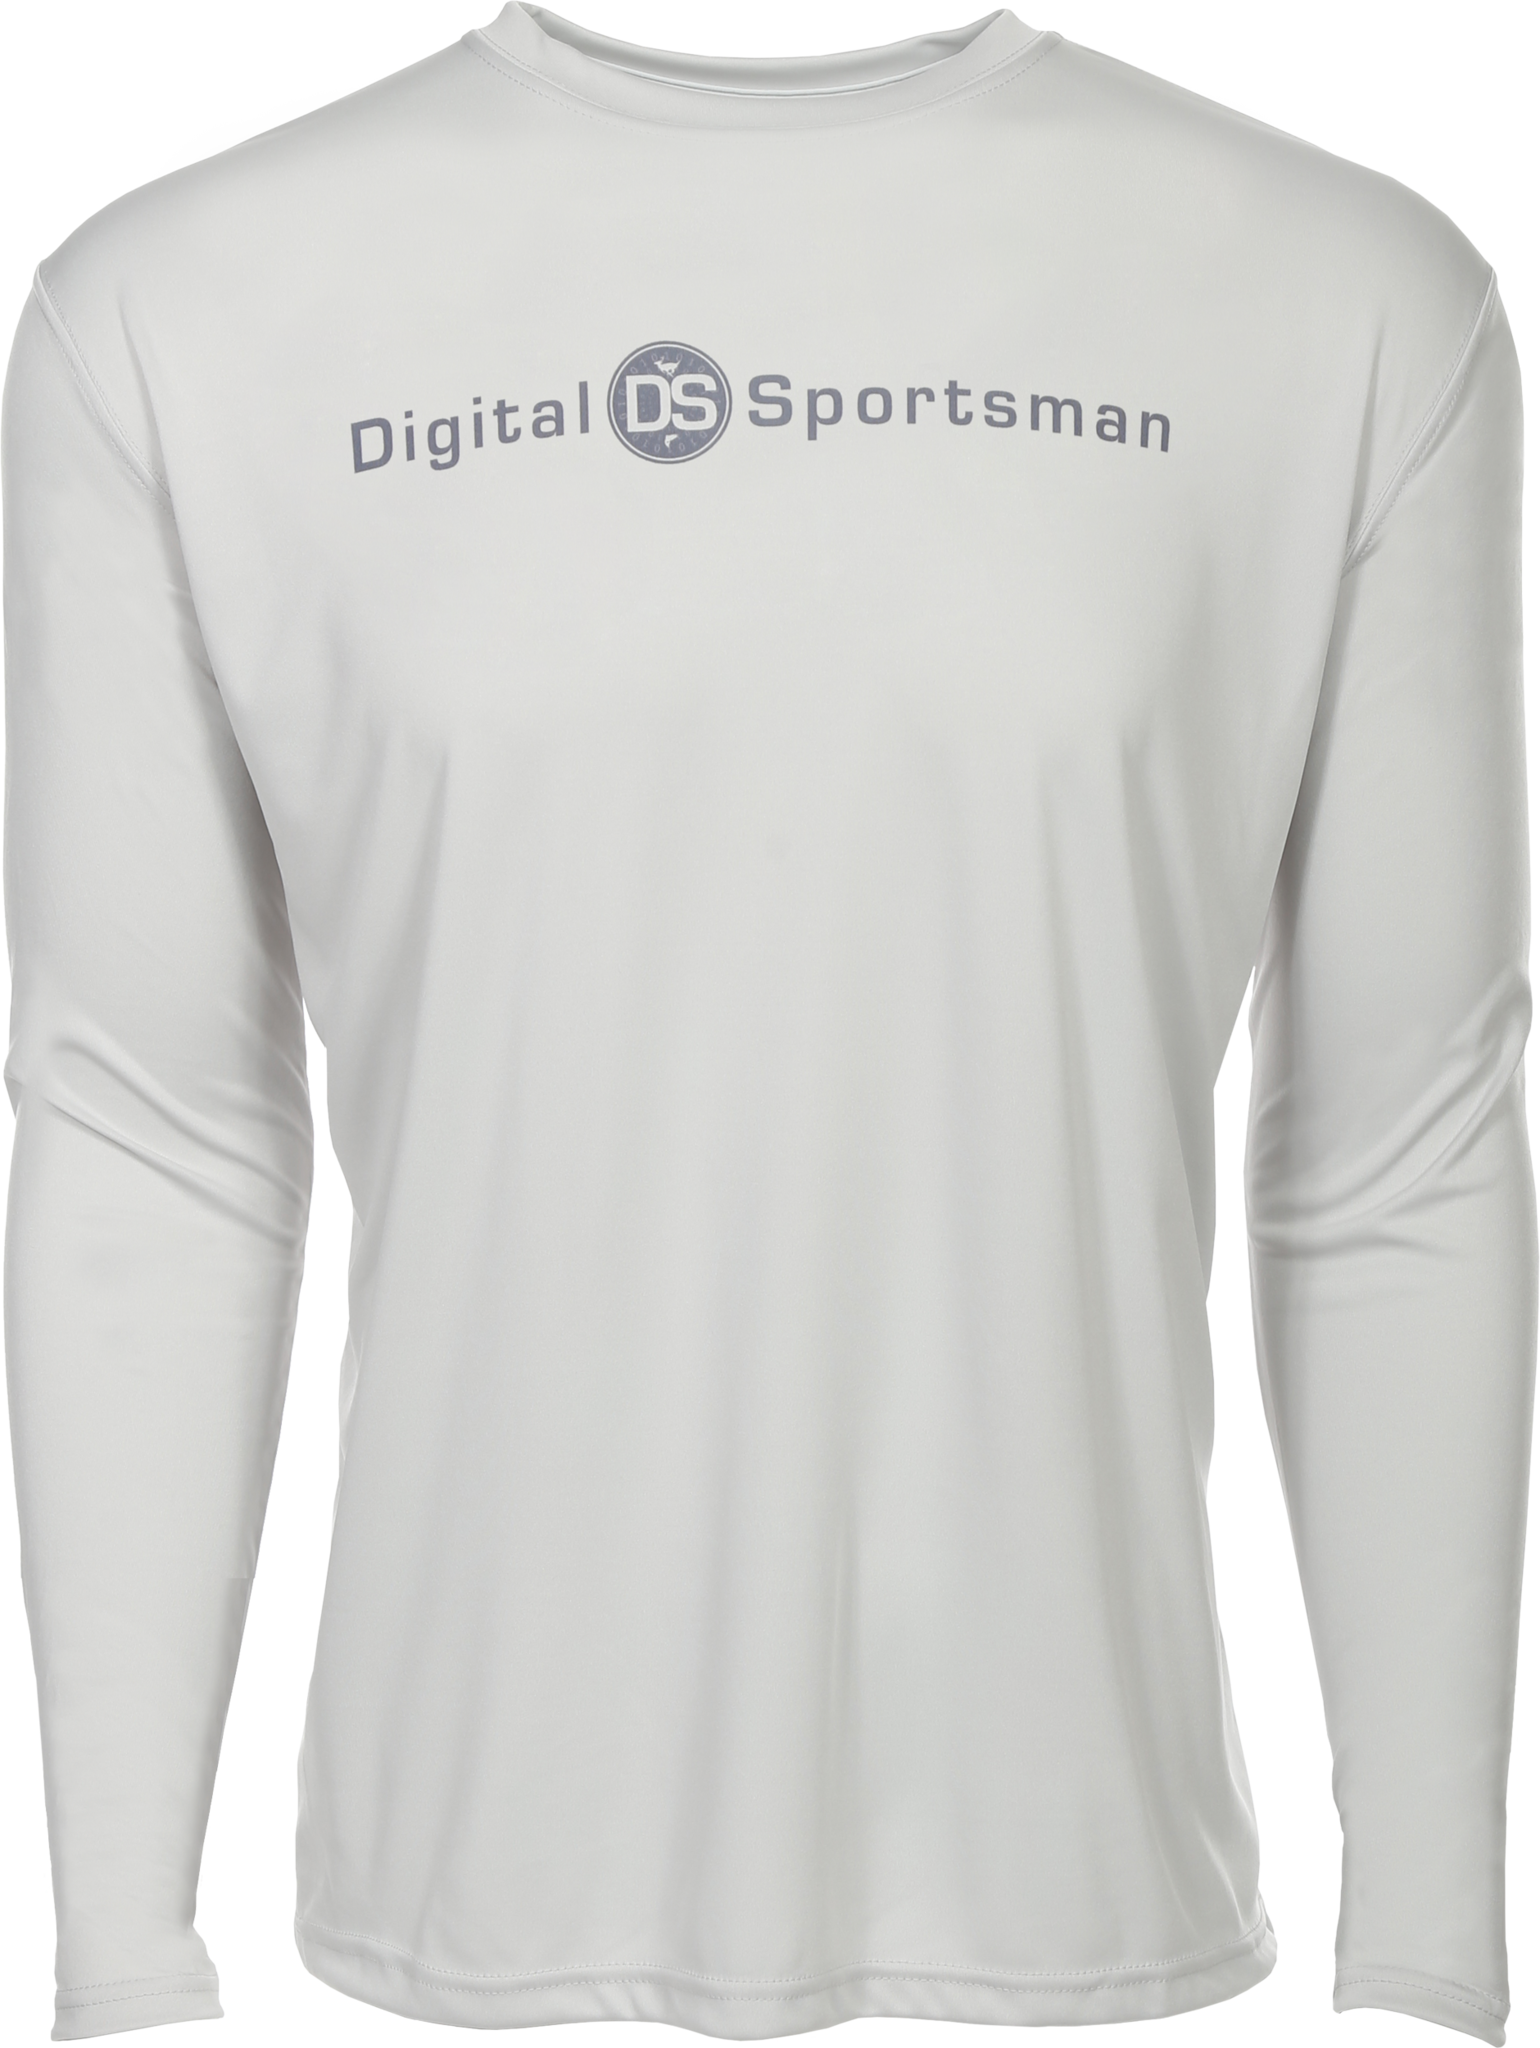 Light grey long sleeve tee shirt with DigitalSportsman logo in darker grey letters